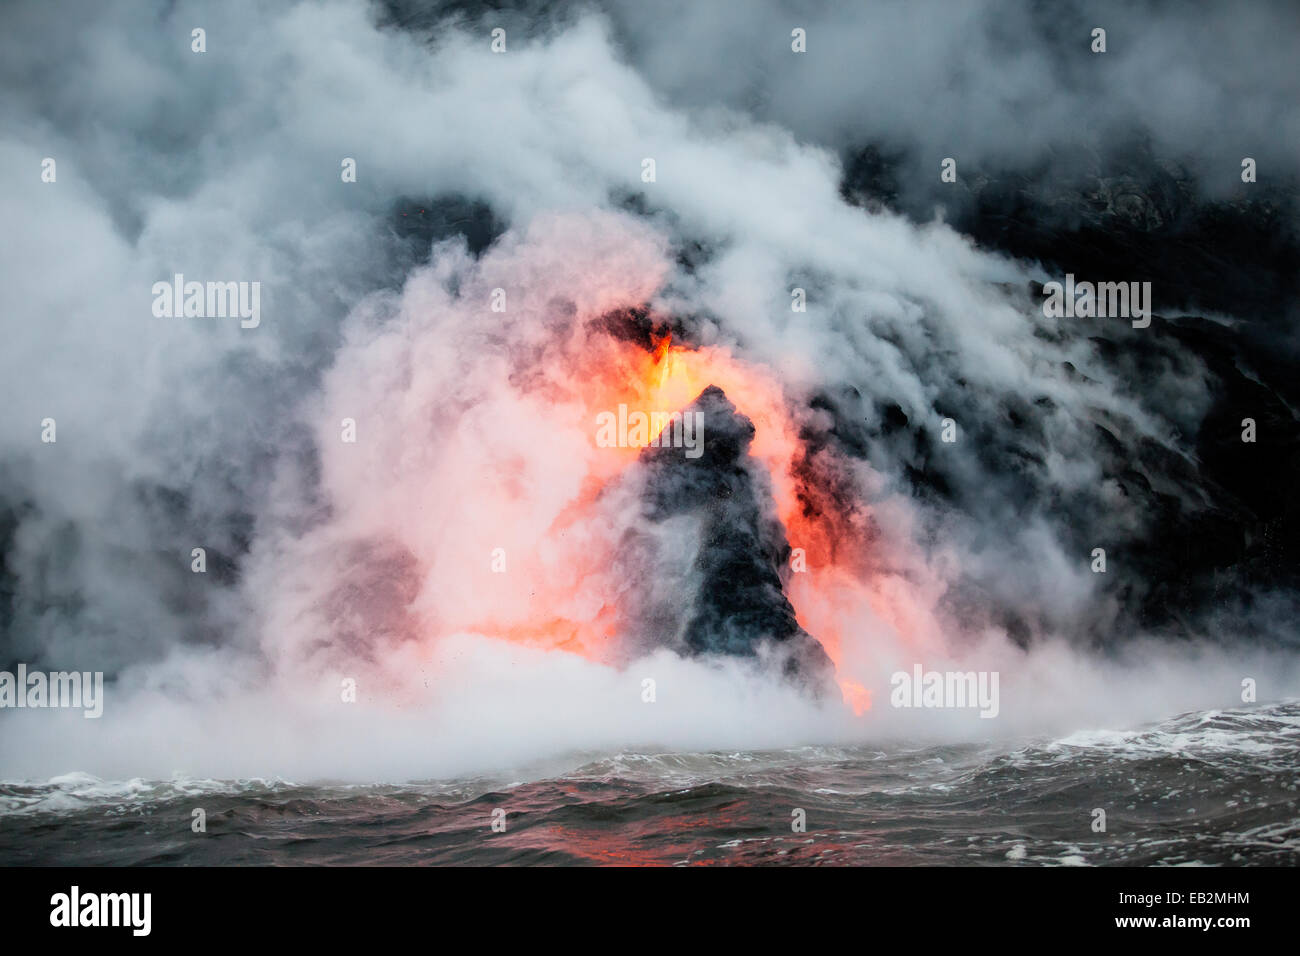 Puʻu ʻŌʻō volcano, volcanic eruption, glowing hot lava flowing into the Pacific Ocean, Hawaiʻi Volcanoes National - Stock Image